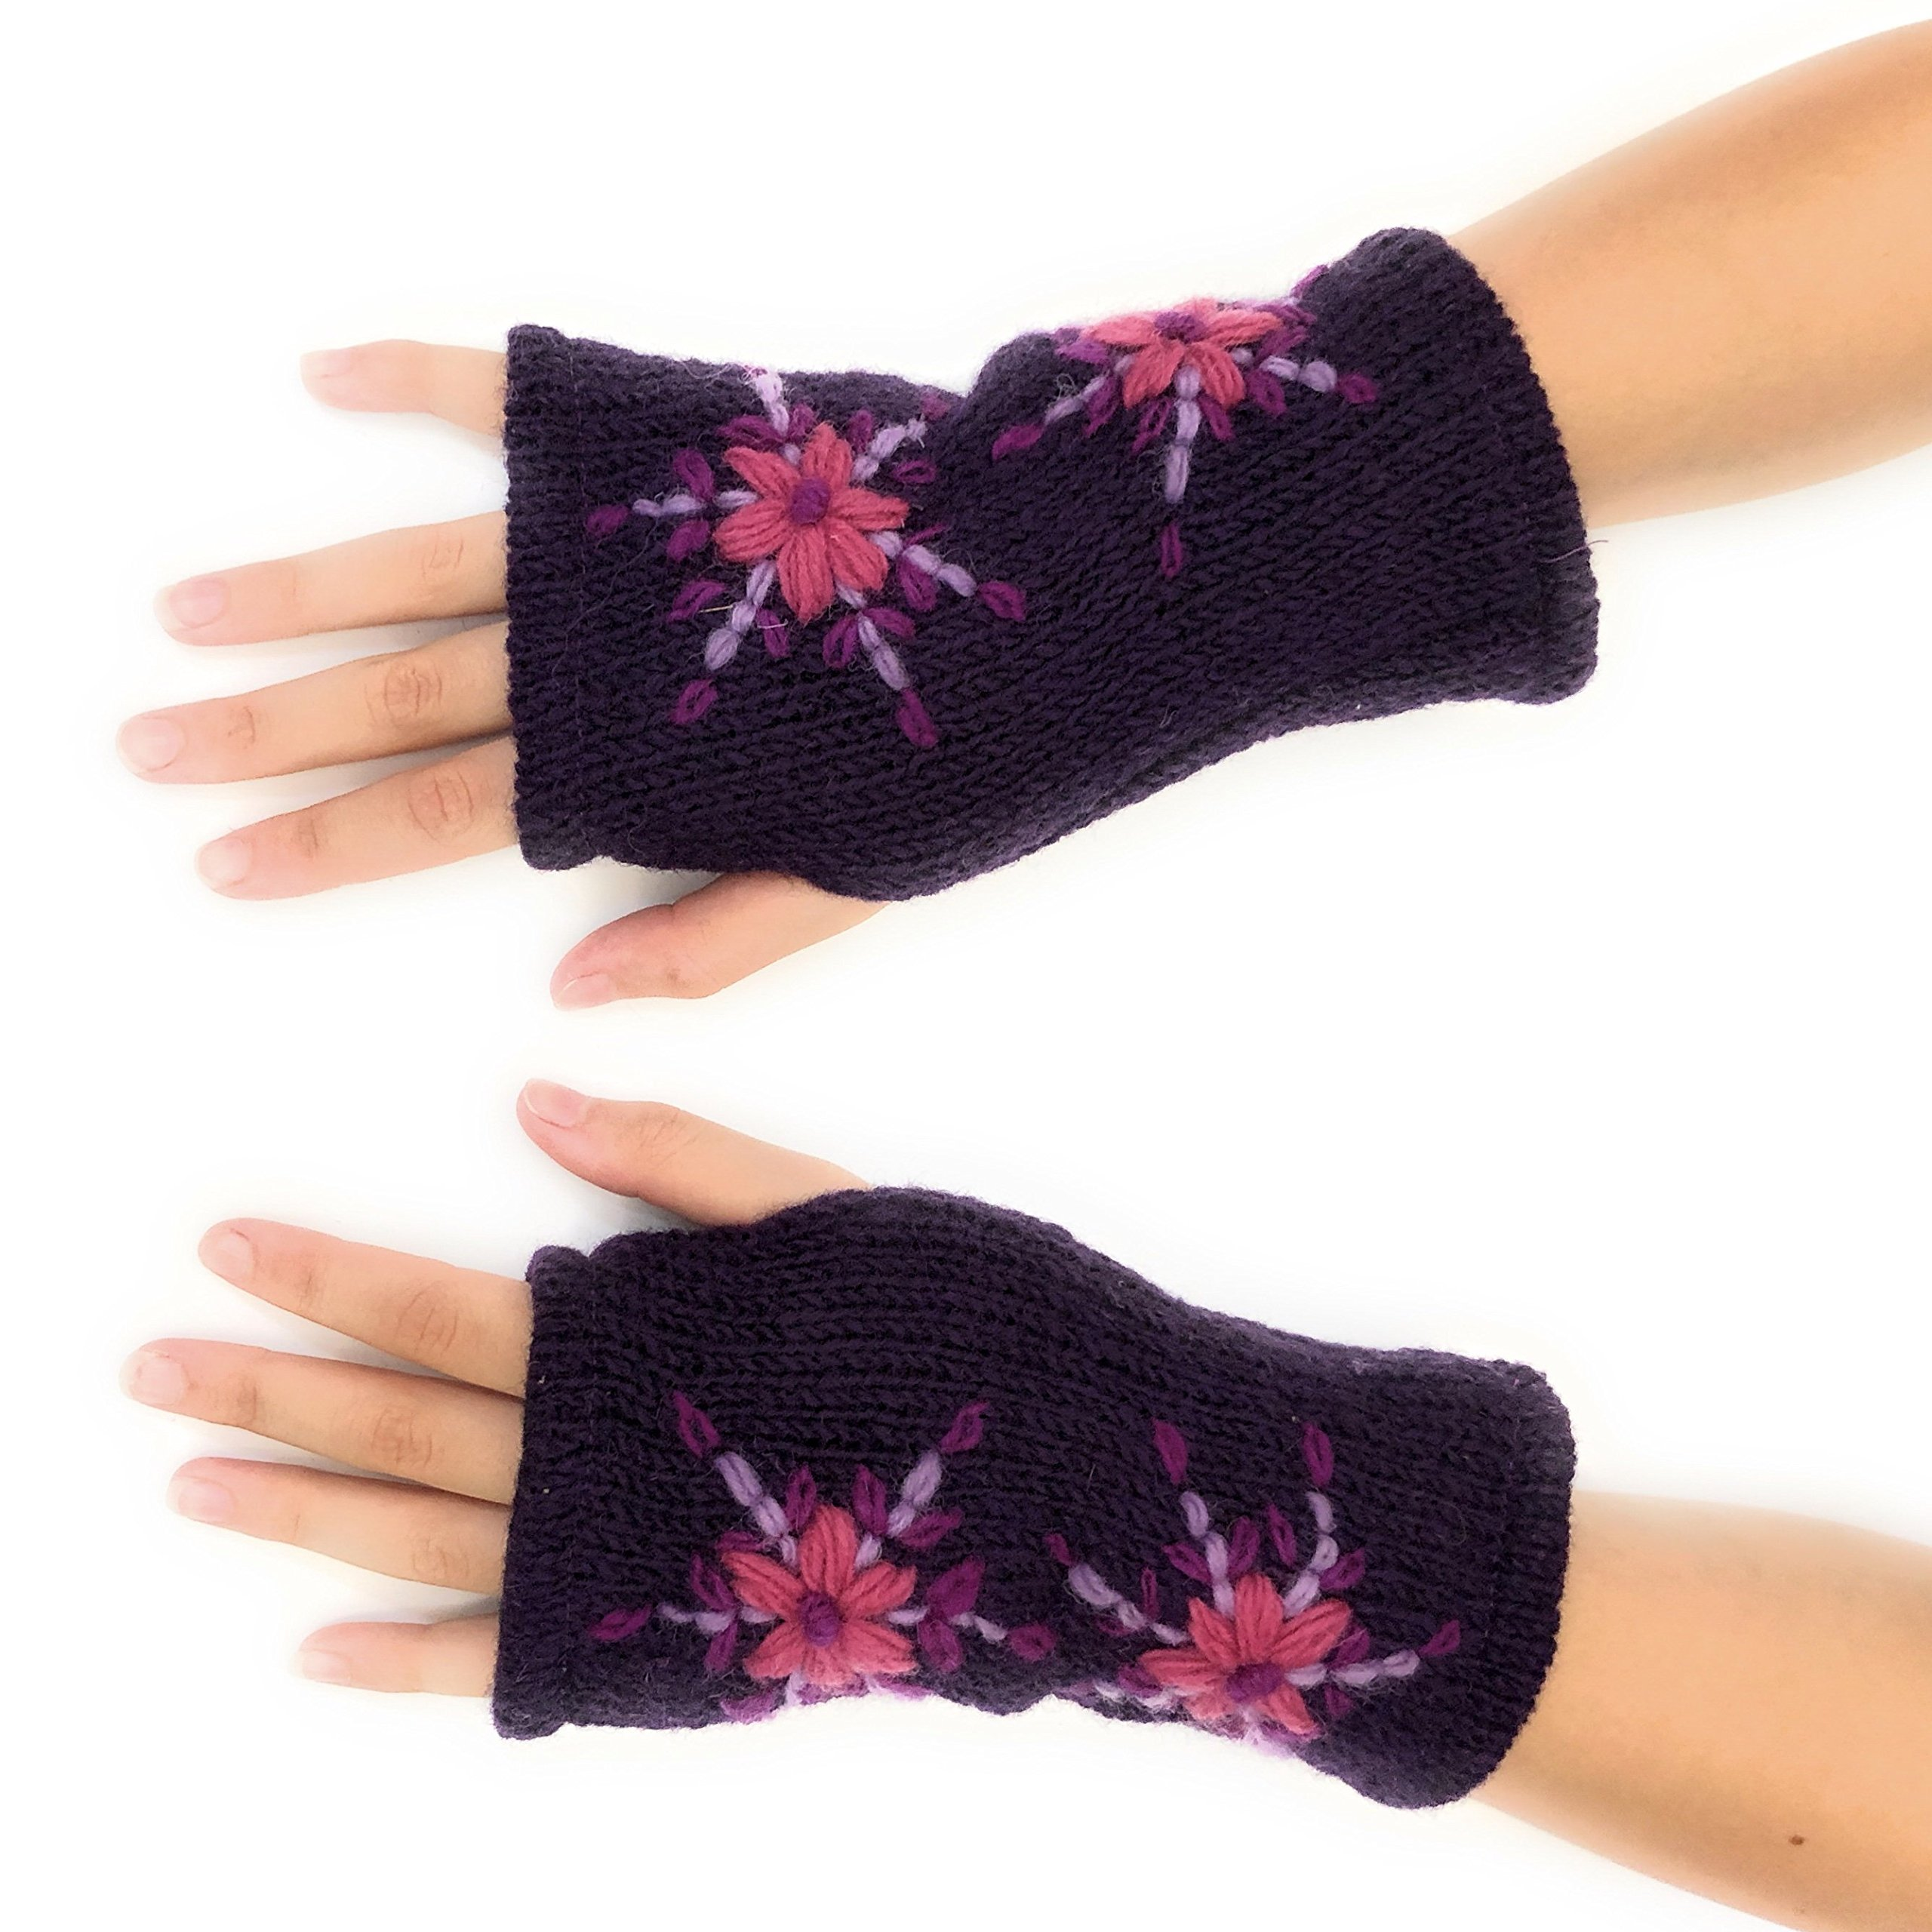 Hand Knit Fingerless Embroidered Double Flower Winter Wool Texting Gloves Mittens Warm Fleece Lined (Purple)